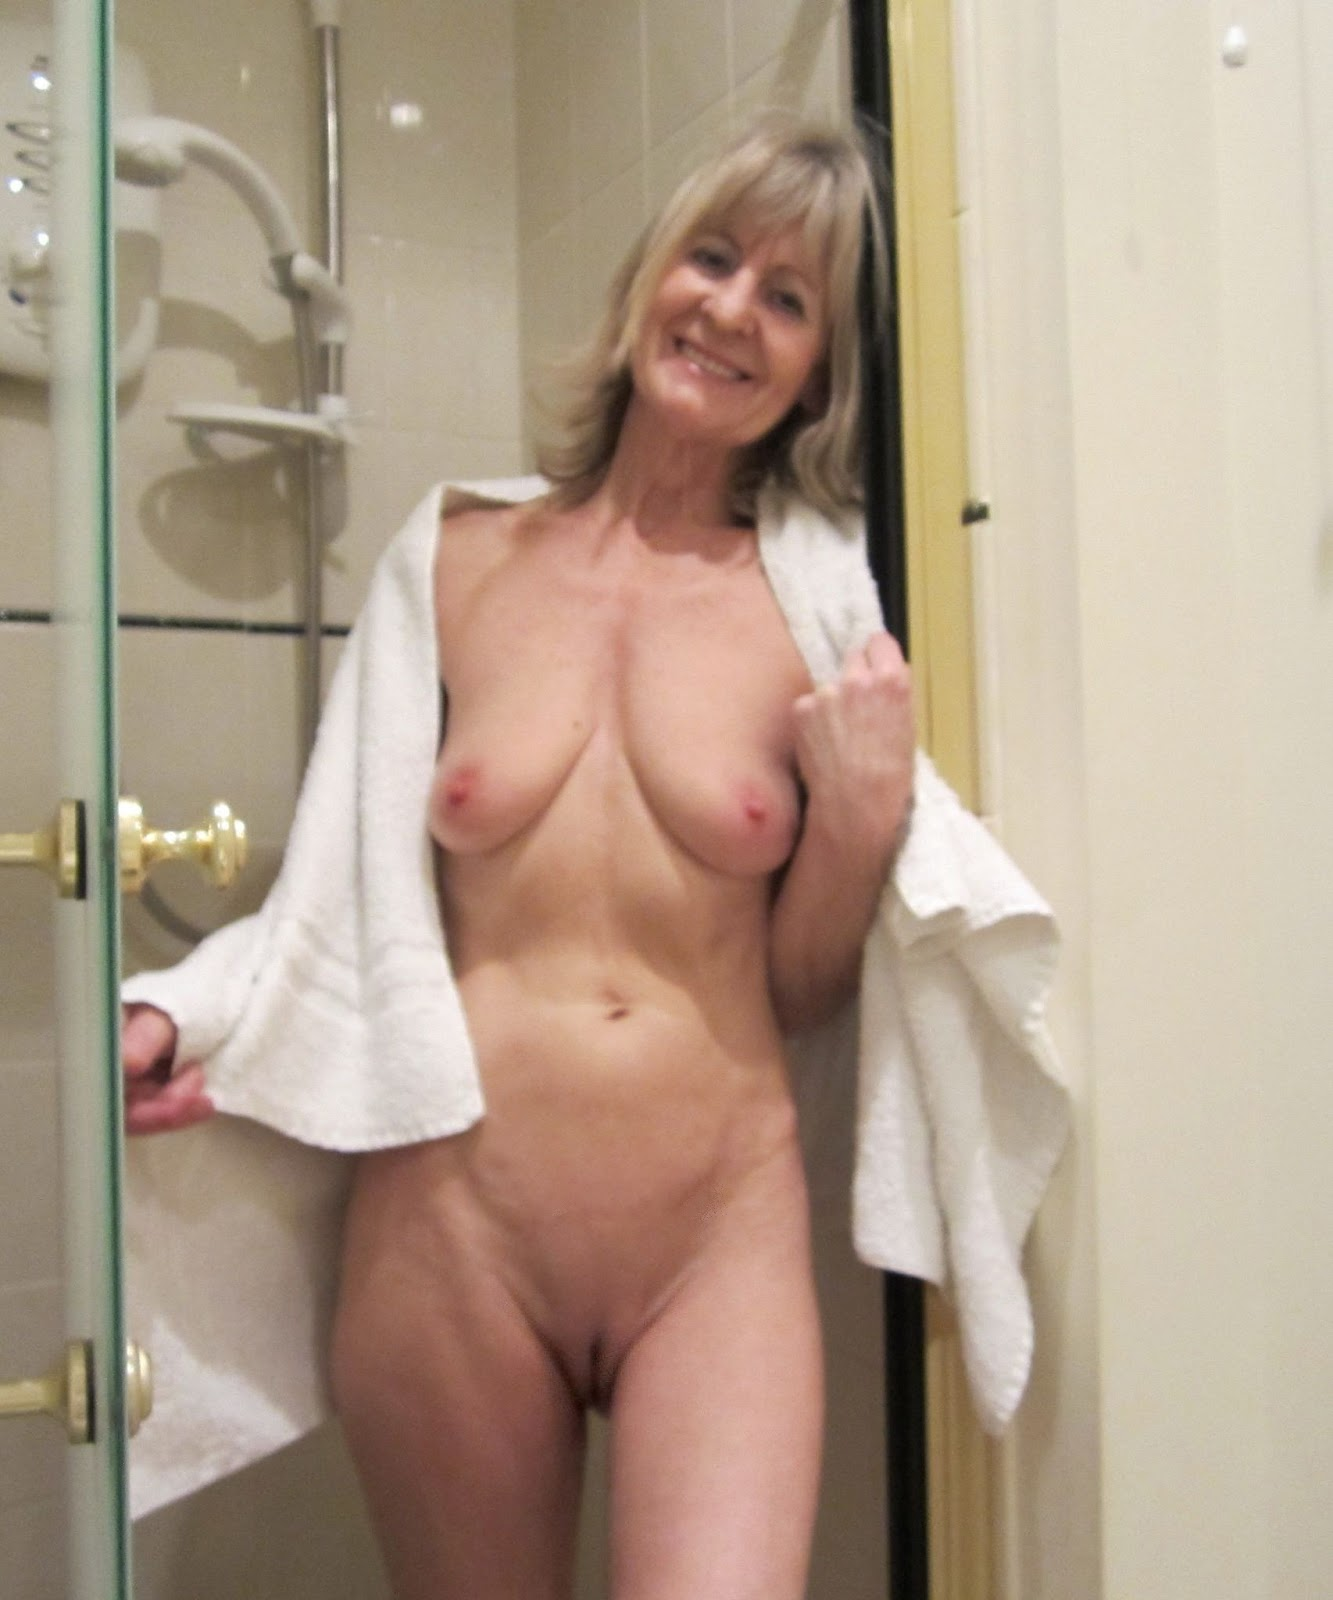 Busty gilf nude pussy speaking